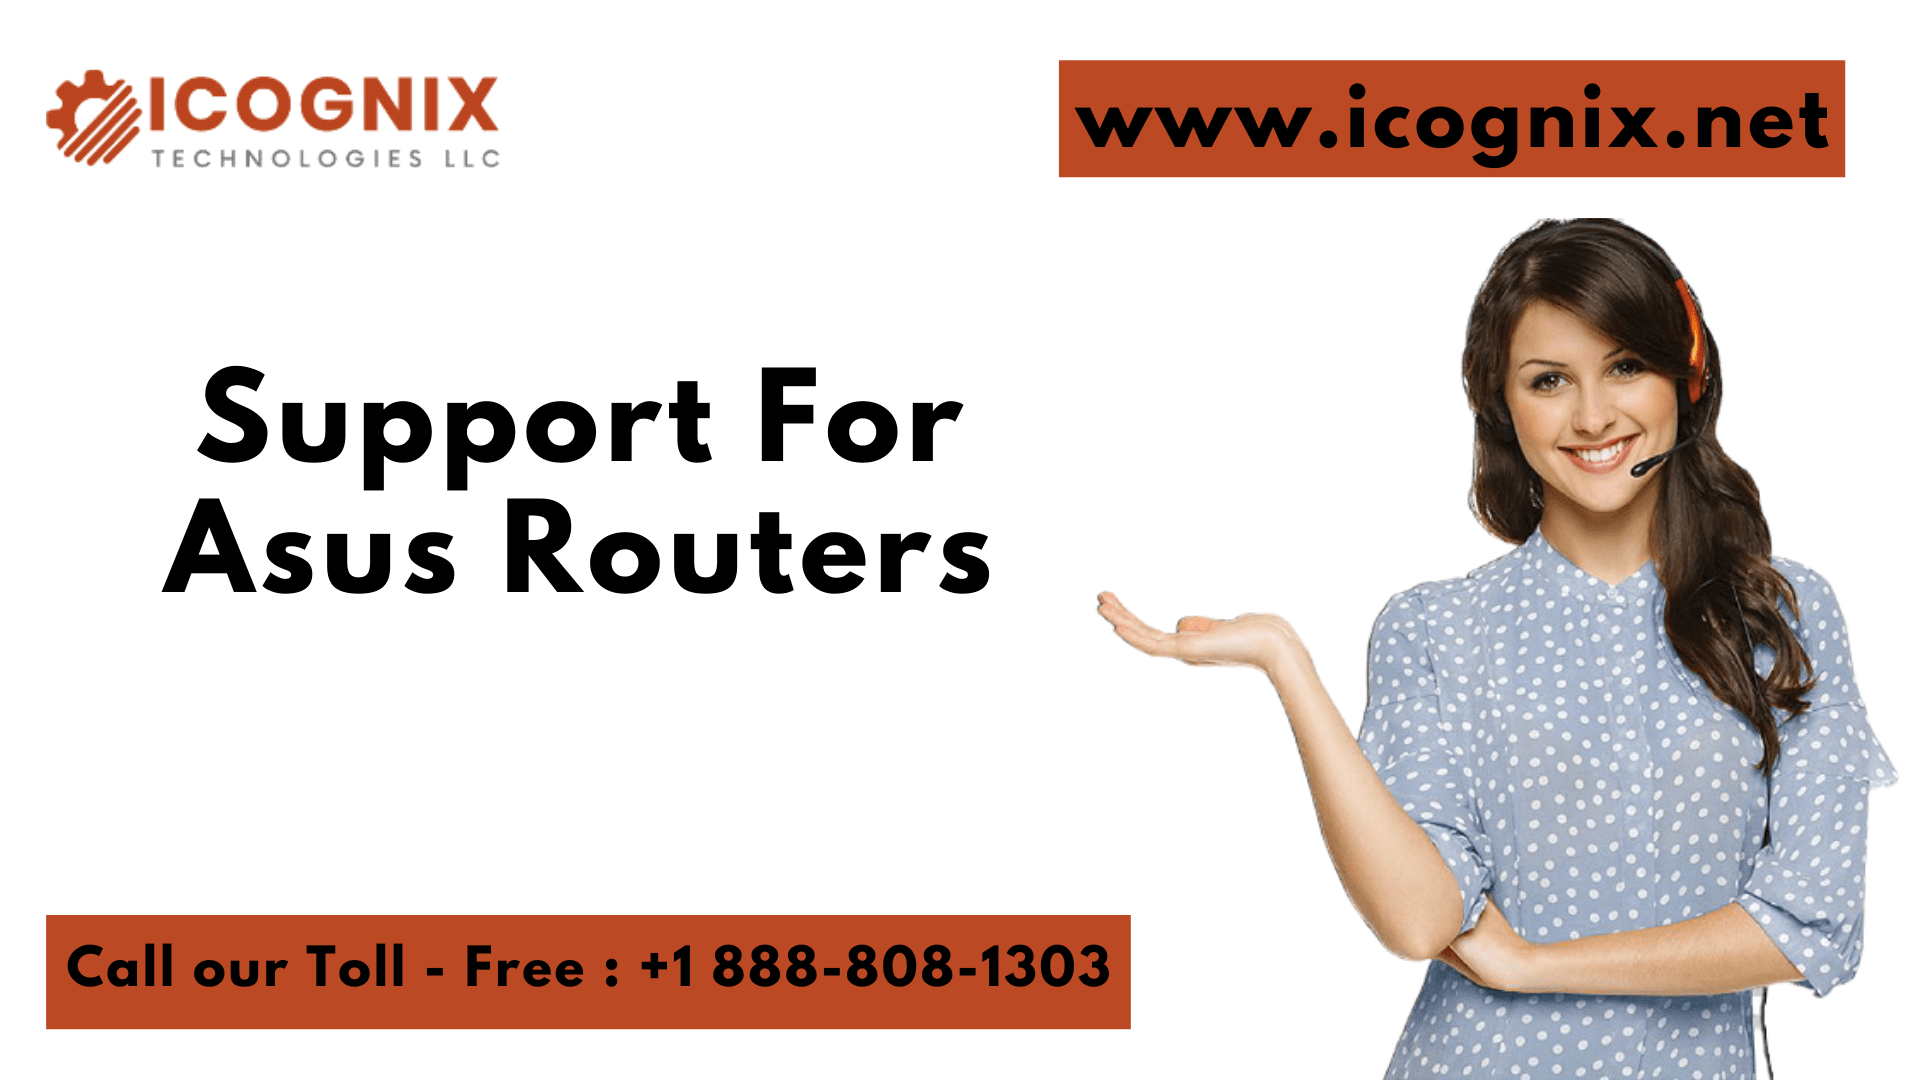 Support For Asus Routers